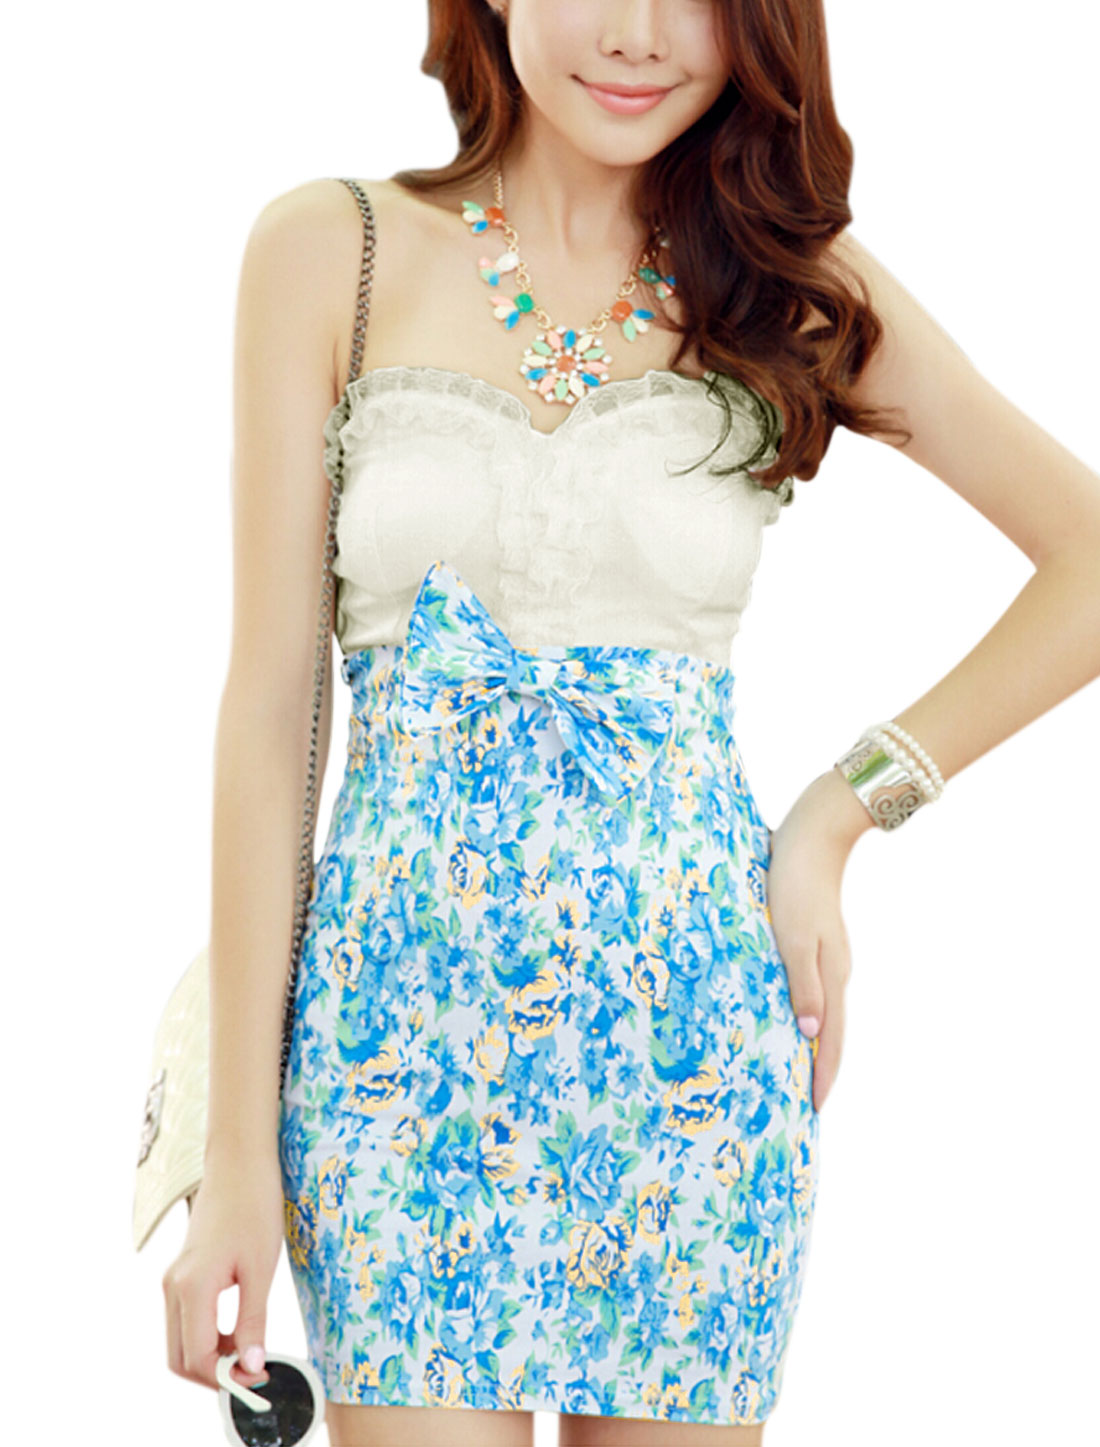 Lady Strapless Padded Bust Bowknot Decor Floral Prints Mini Dress White Blue XS